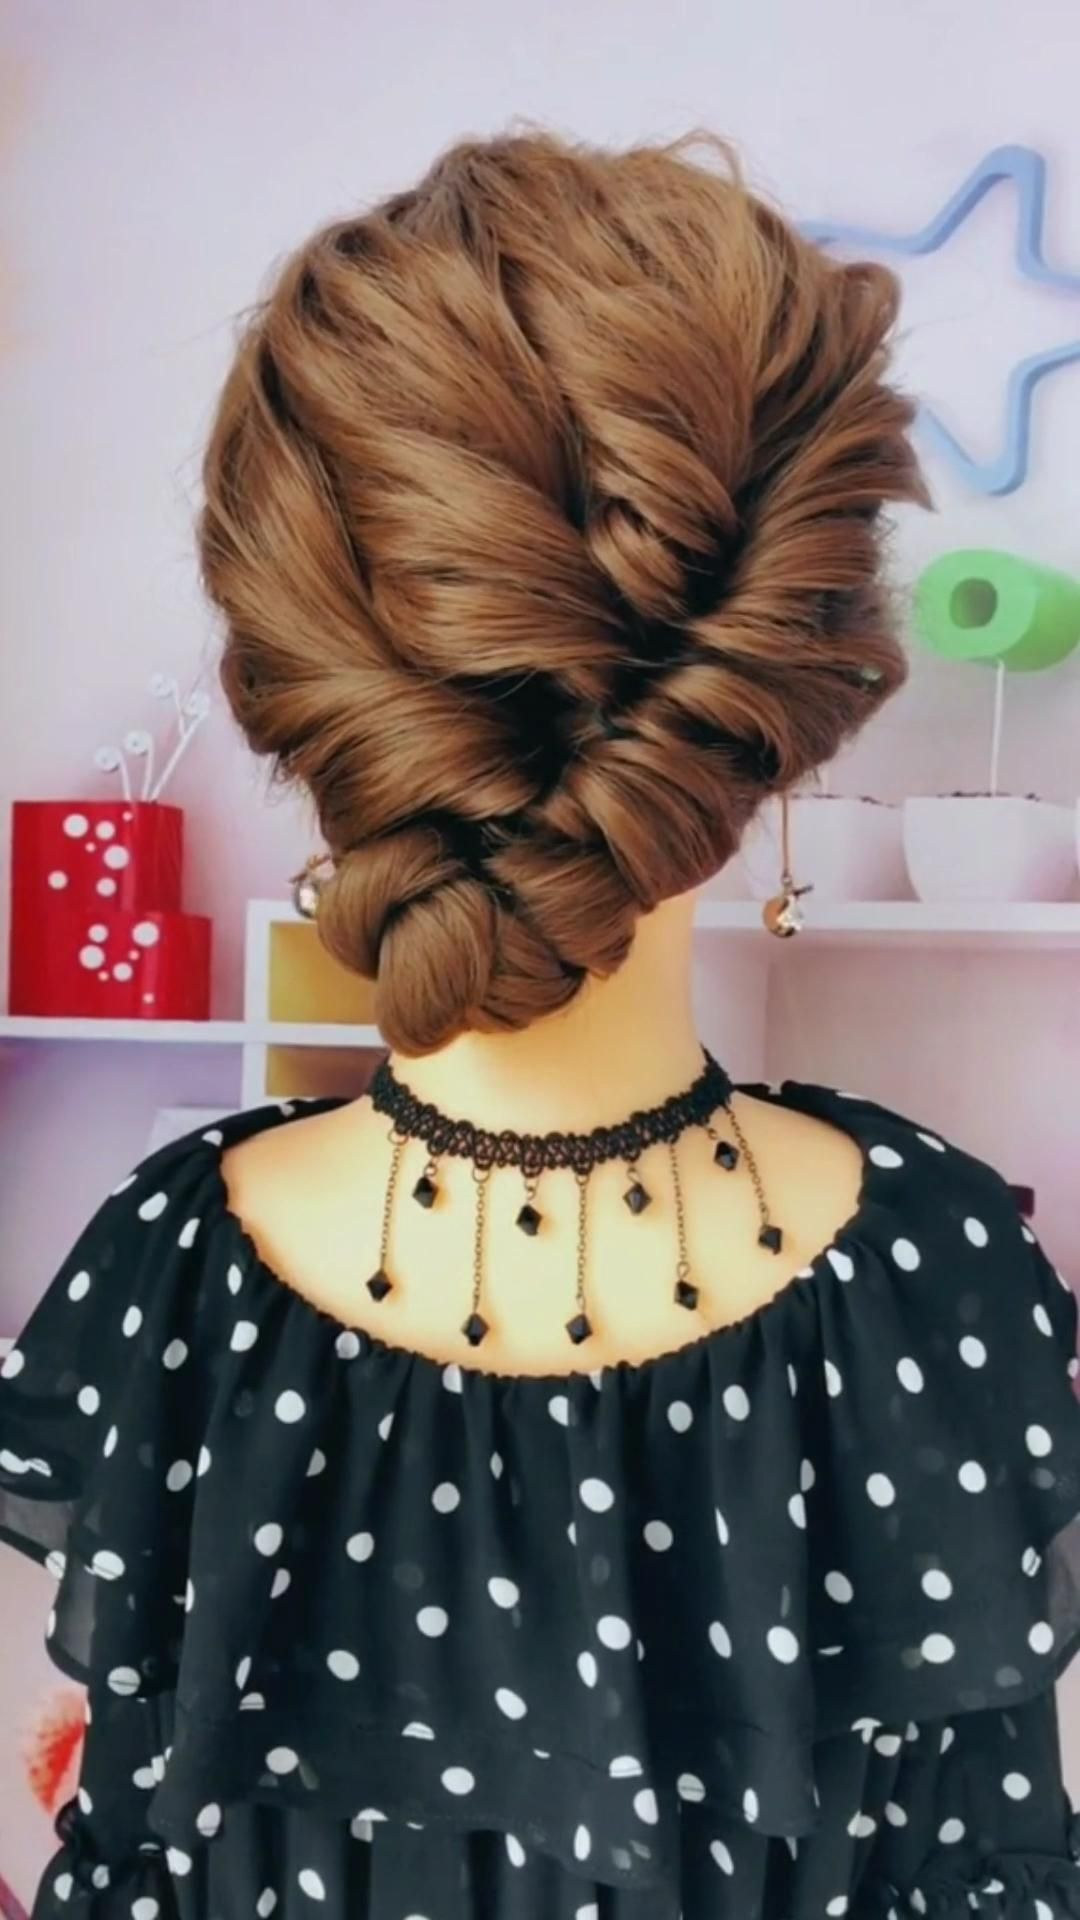 Hairstyle Video In 2020 Headband Hairstyles Hair Up Styles Hair Styles